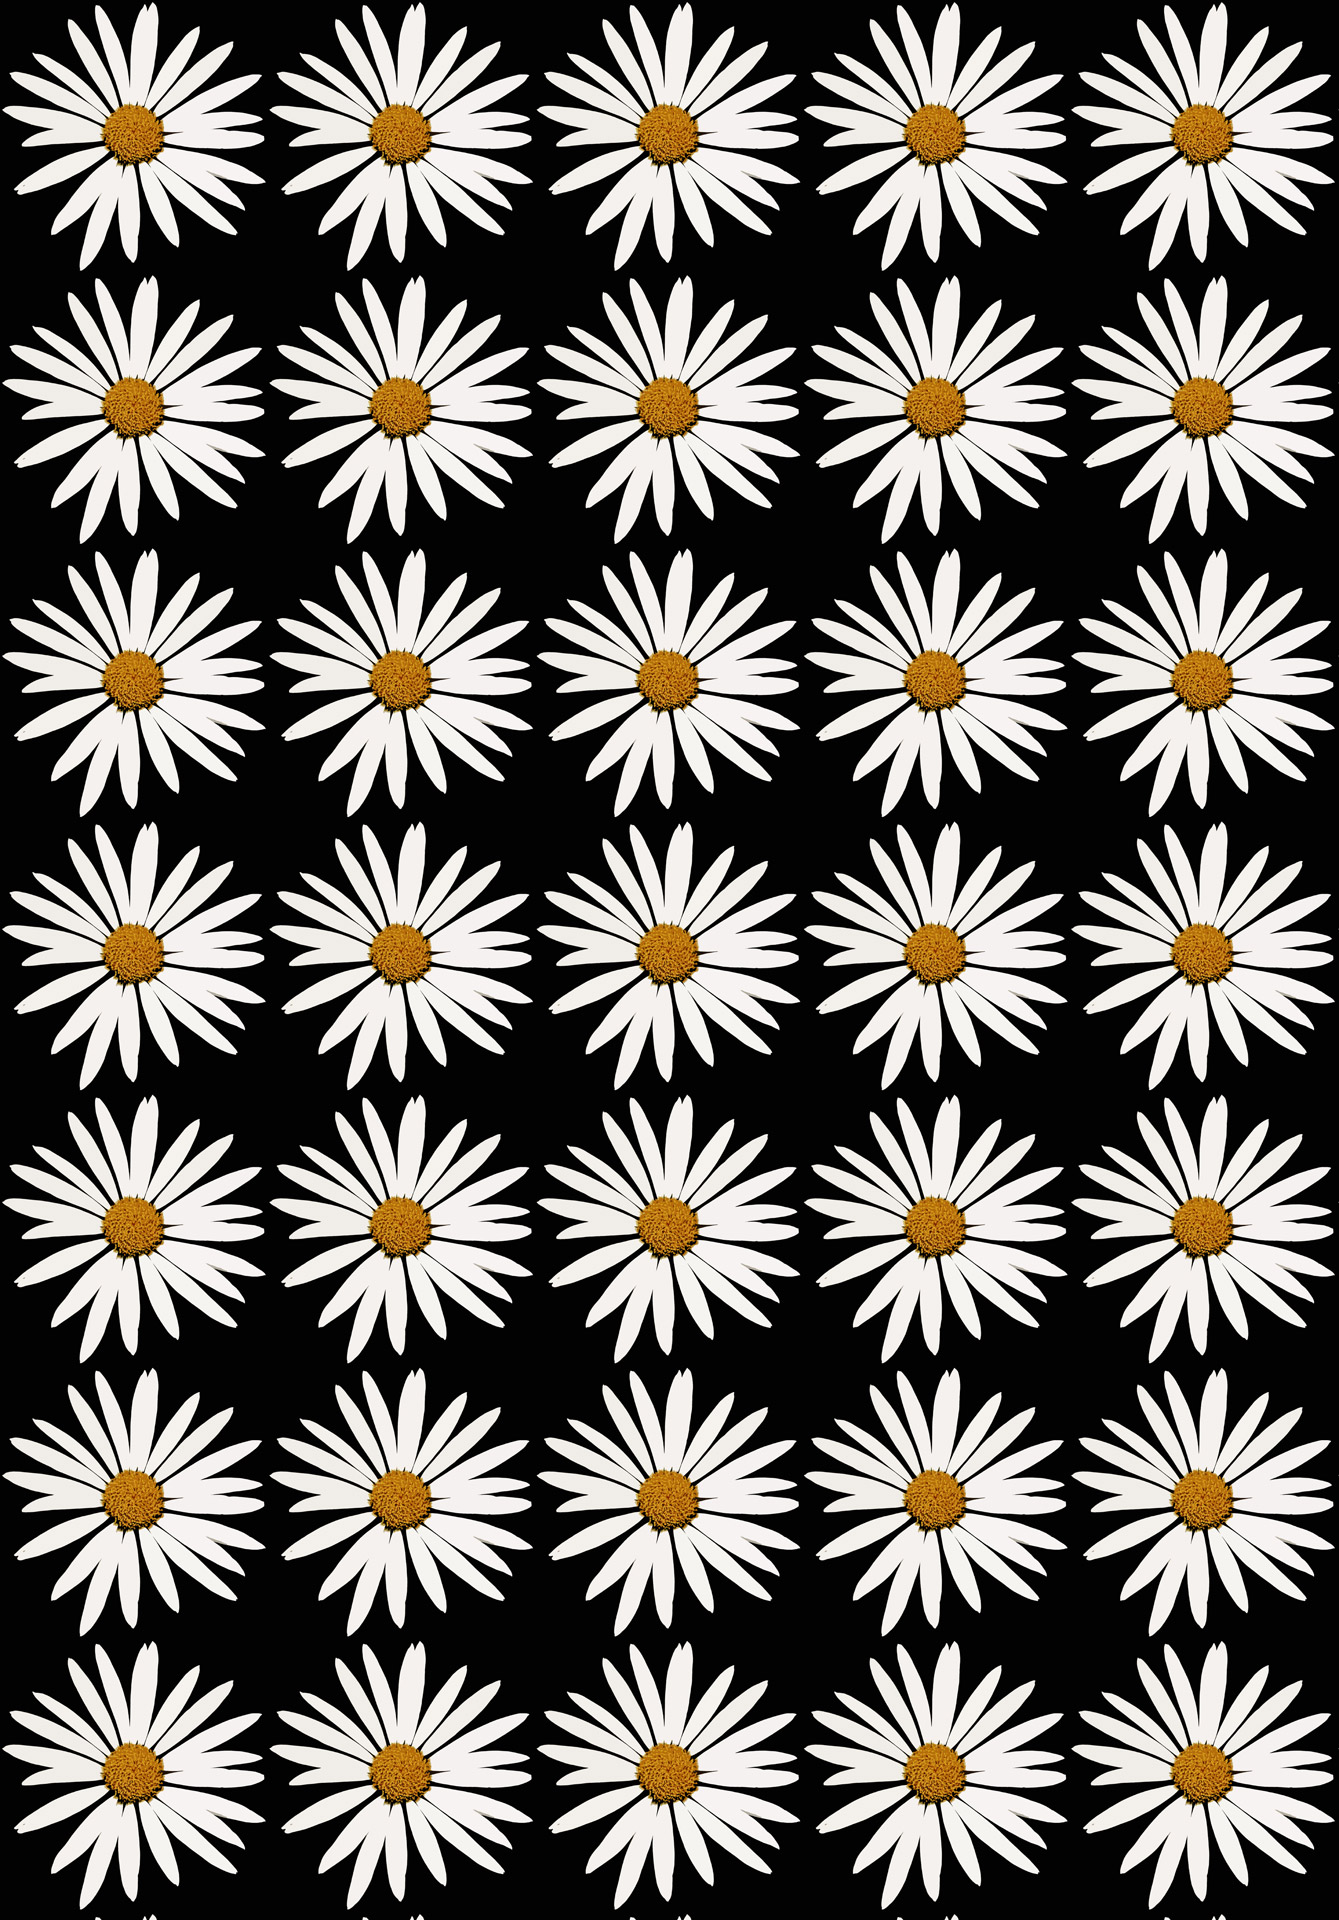 Daisy White Repeat Wallpaper Background Free Image From Needpix Com